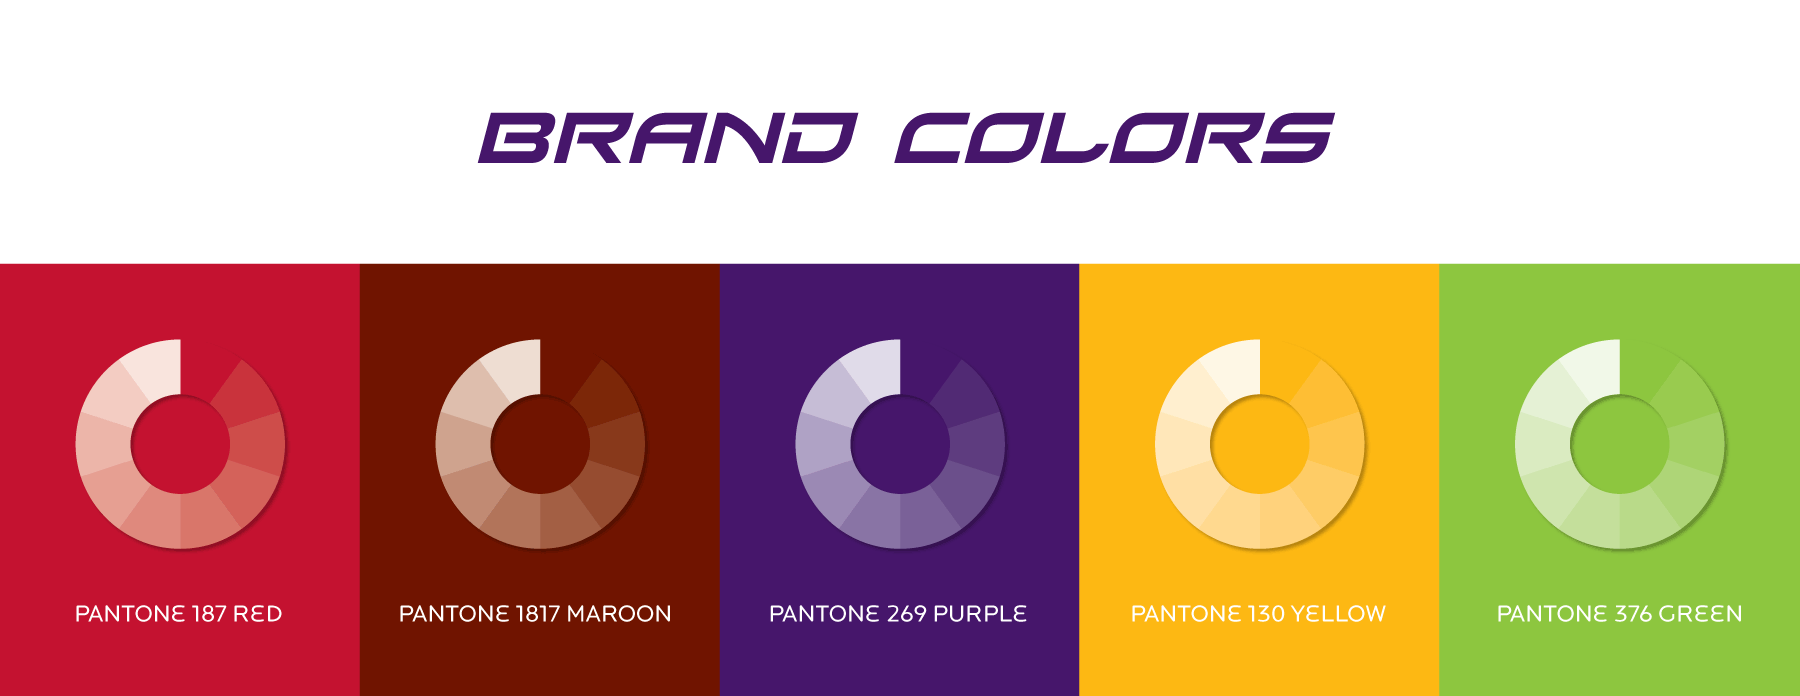 jackrabbit-brand-colors